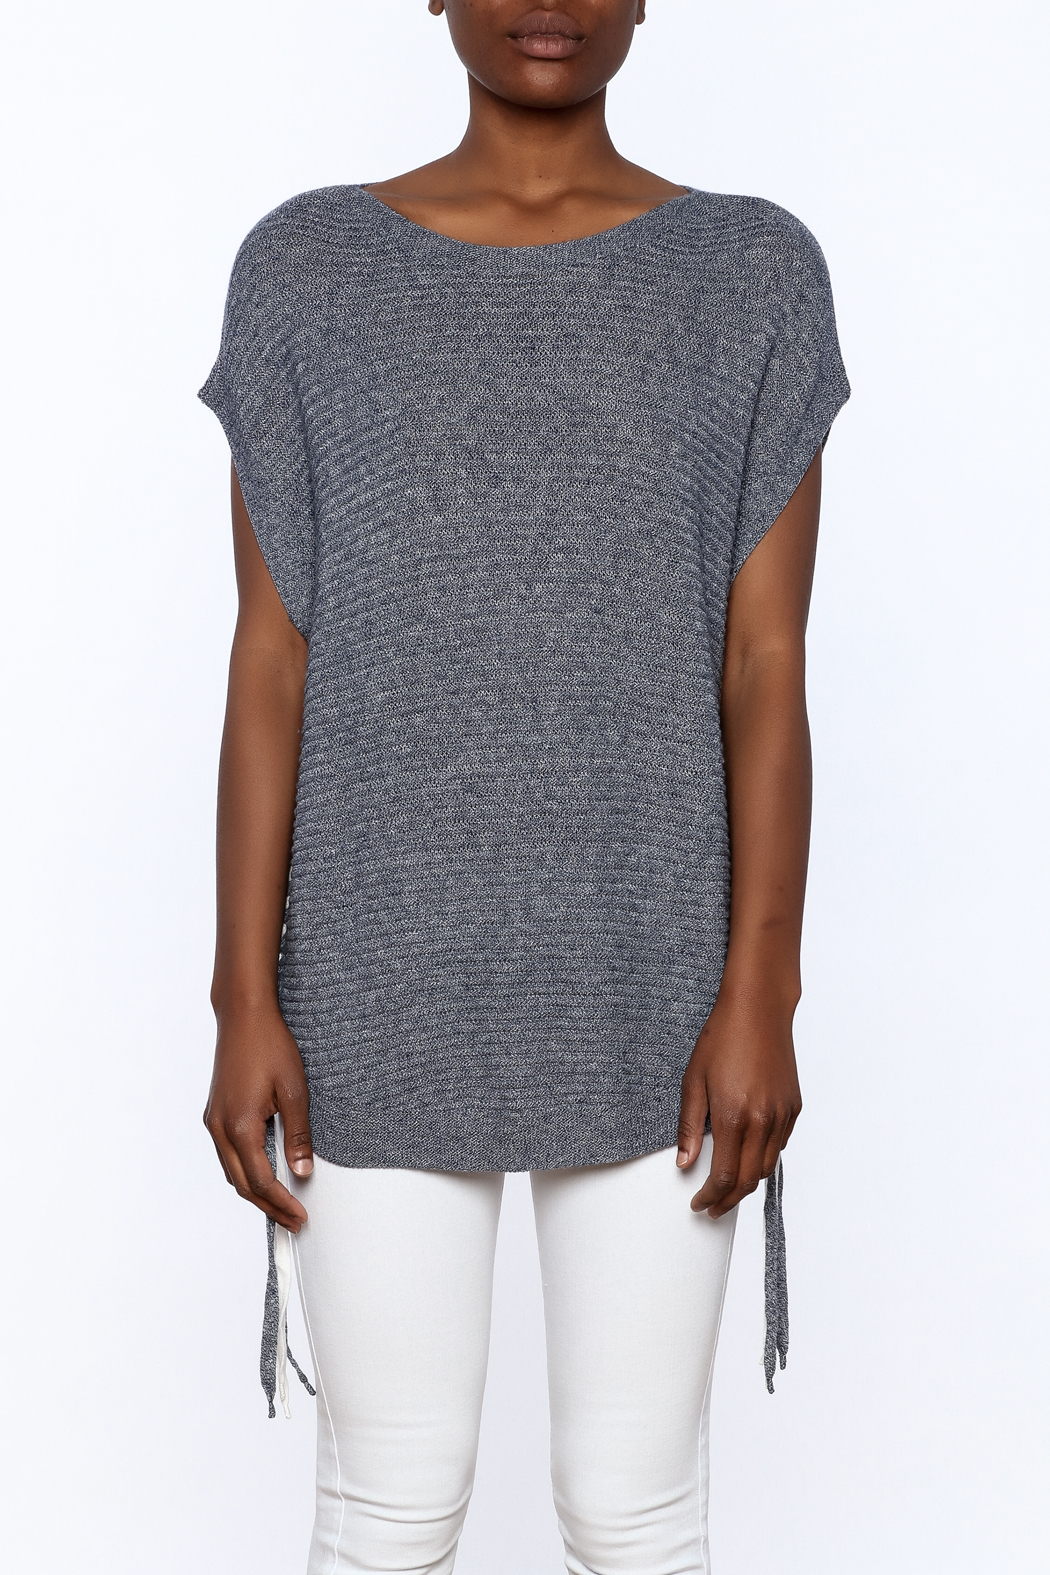 zoe couture Grey Tunic Sweater - Side Cropped Image